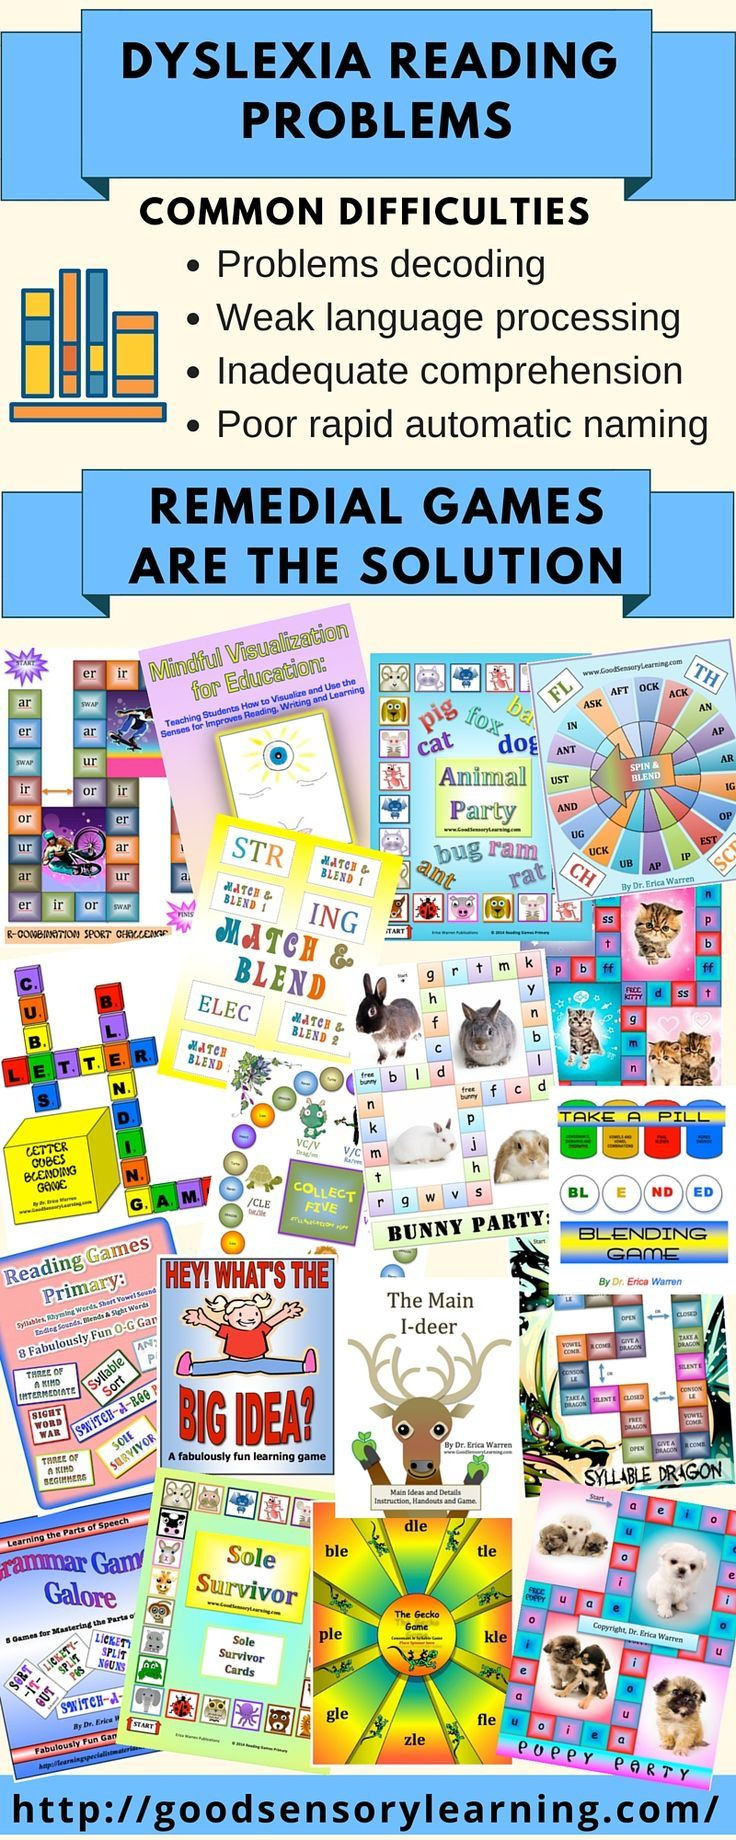 Good Sensory Learning offers a large selection of dyslexia remedial reading tools that decoding, visualization, comprehension, language processing and automatic naming.